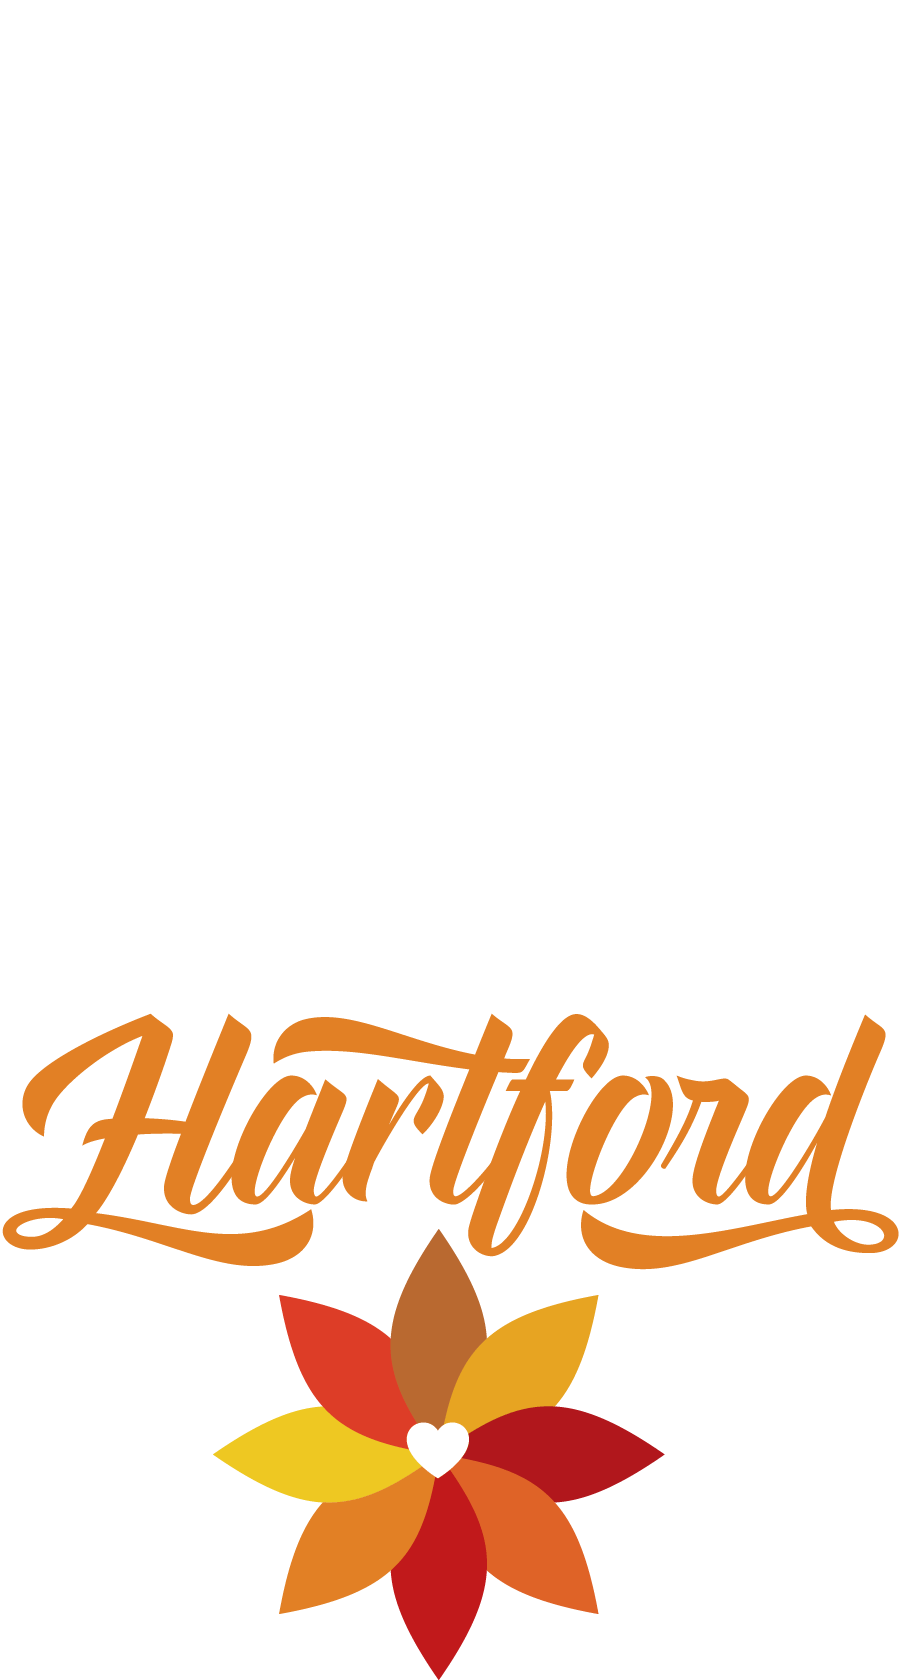 HighEdWeb Annual Conference logo